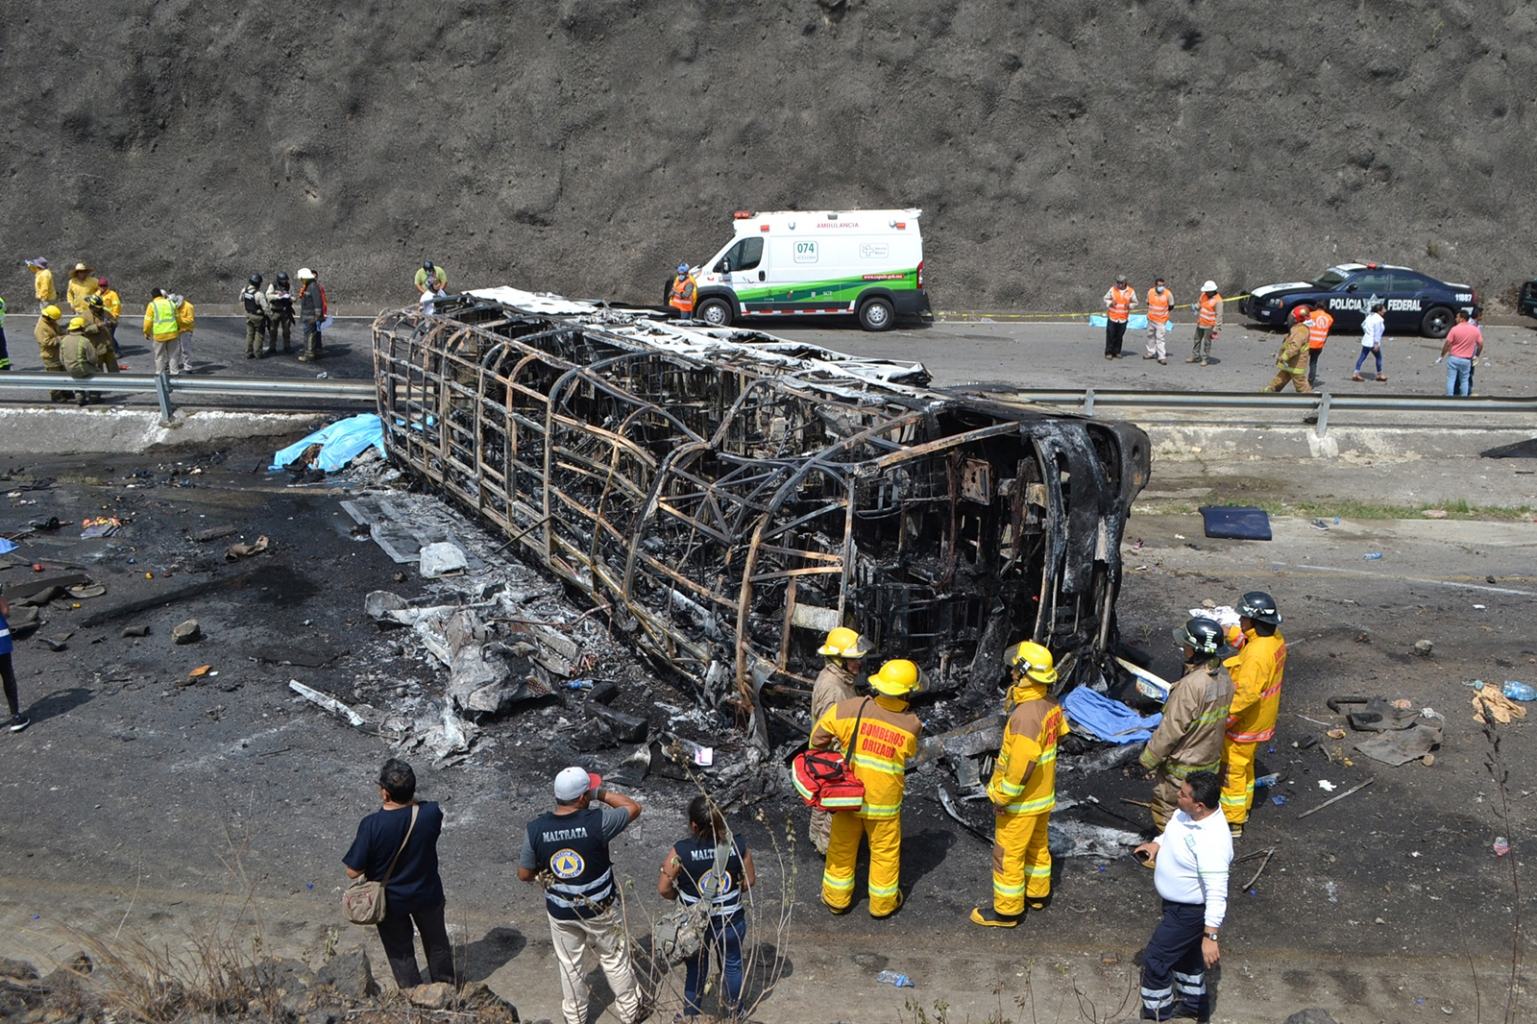 Rescuers and firemen work after a crash between a bus carrying Catholic pilgrims and a semi on a mountain road in Veracruz close to Maltrata, Mexico, on May 29. Guillermo Carreon/Getty Images